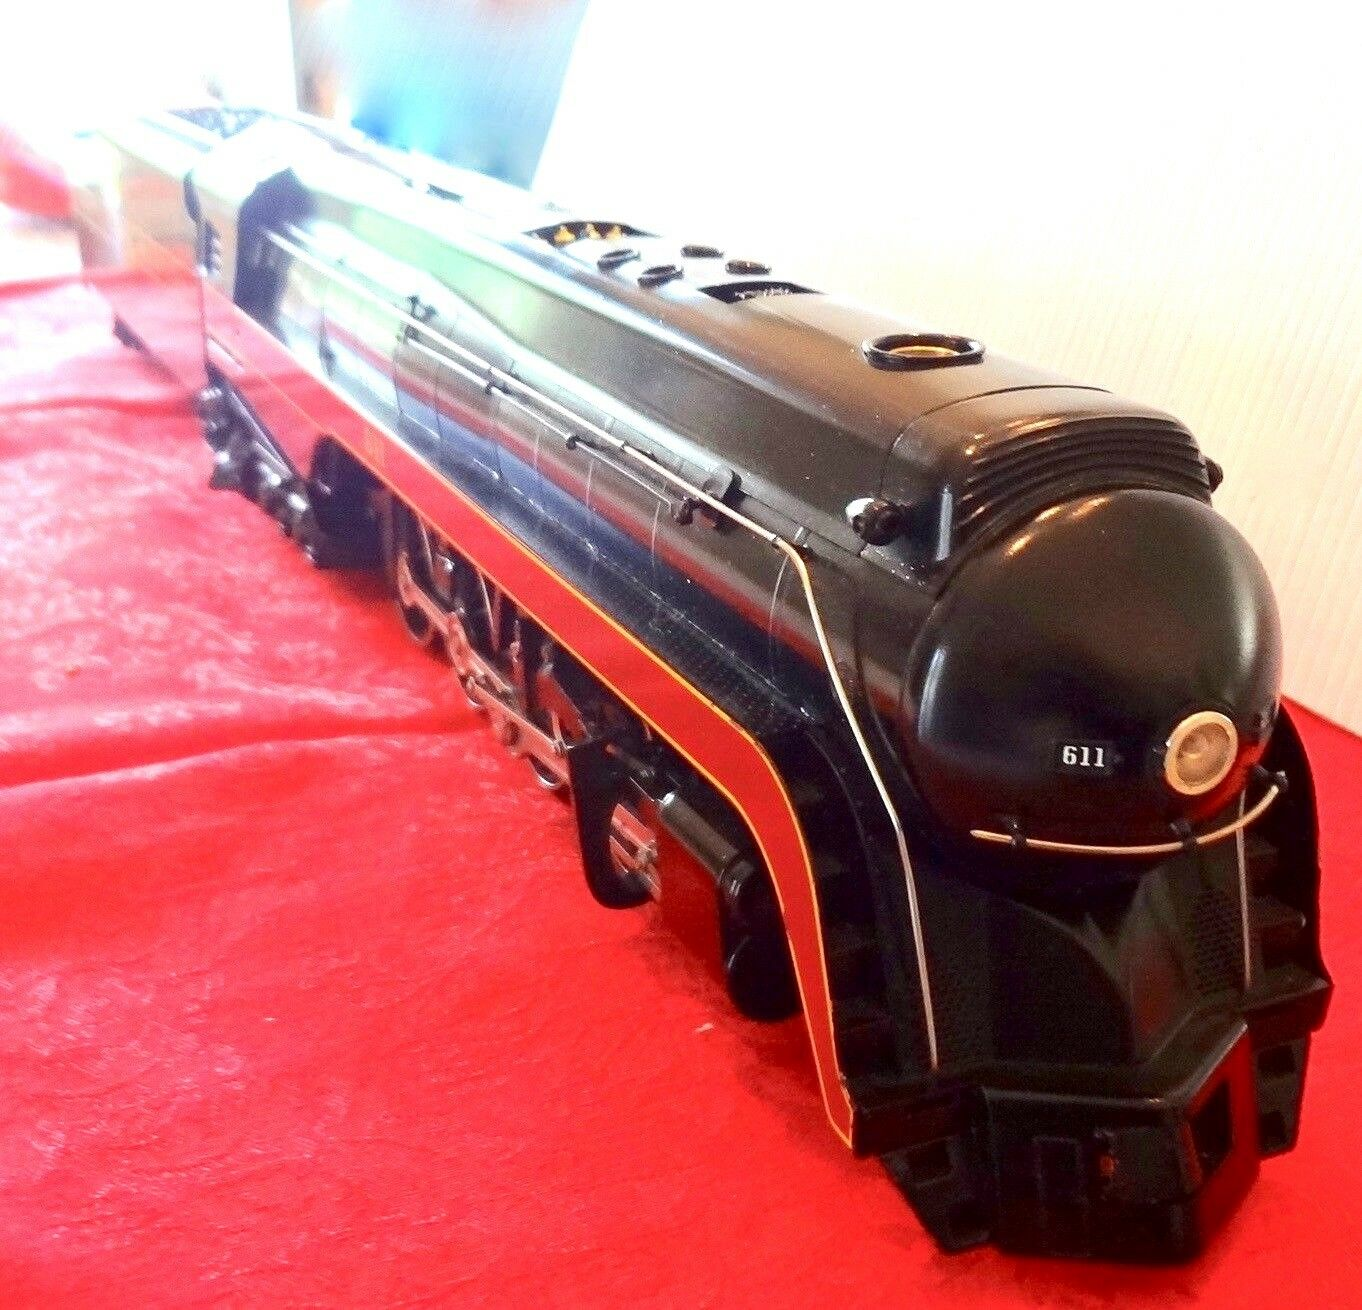 WILLIAMS ELECTRIC TRAINS 611 NORFORK AND WESTERN 2 PIECES